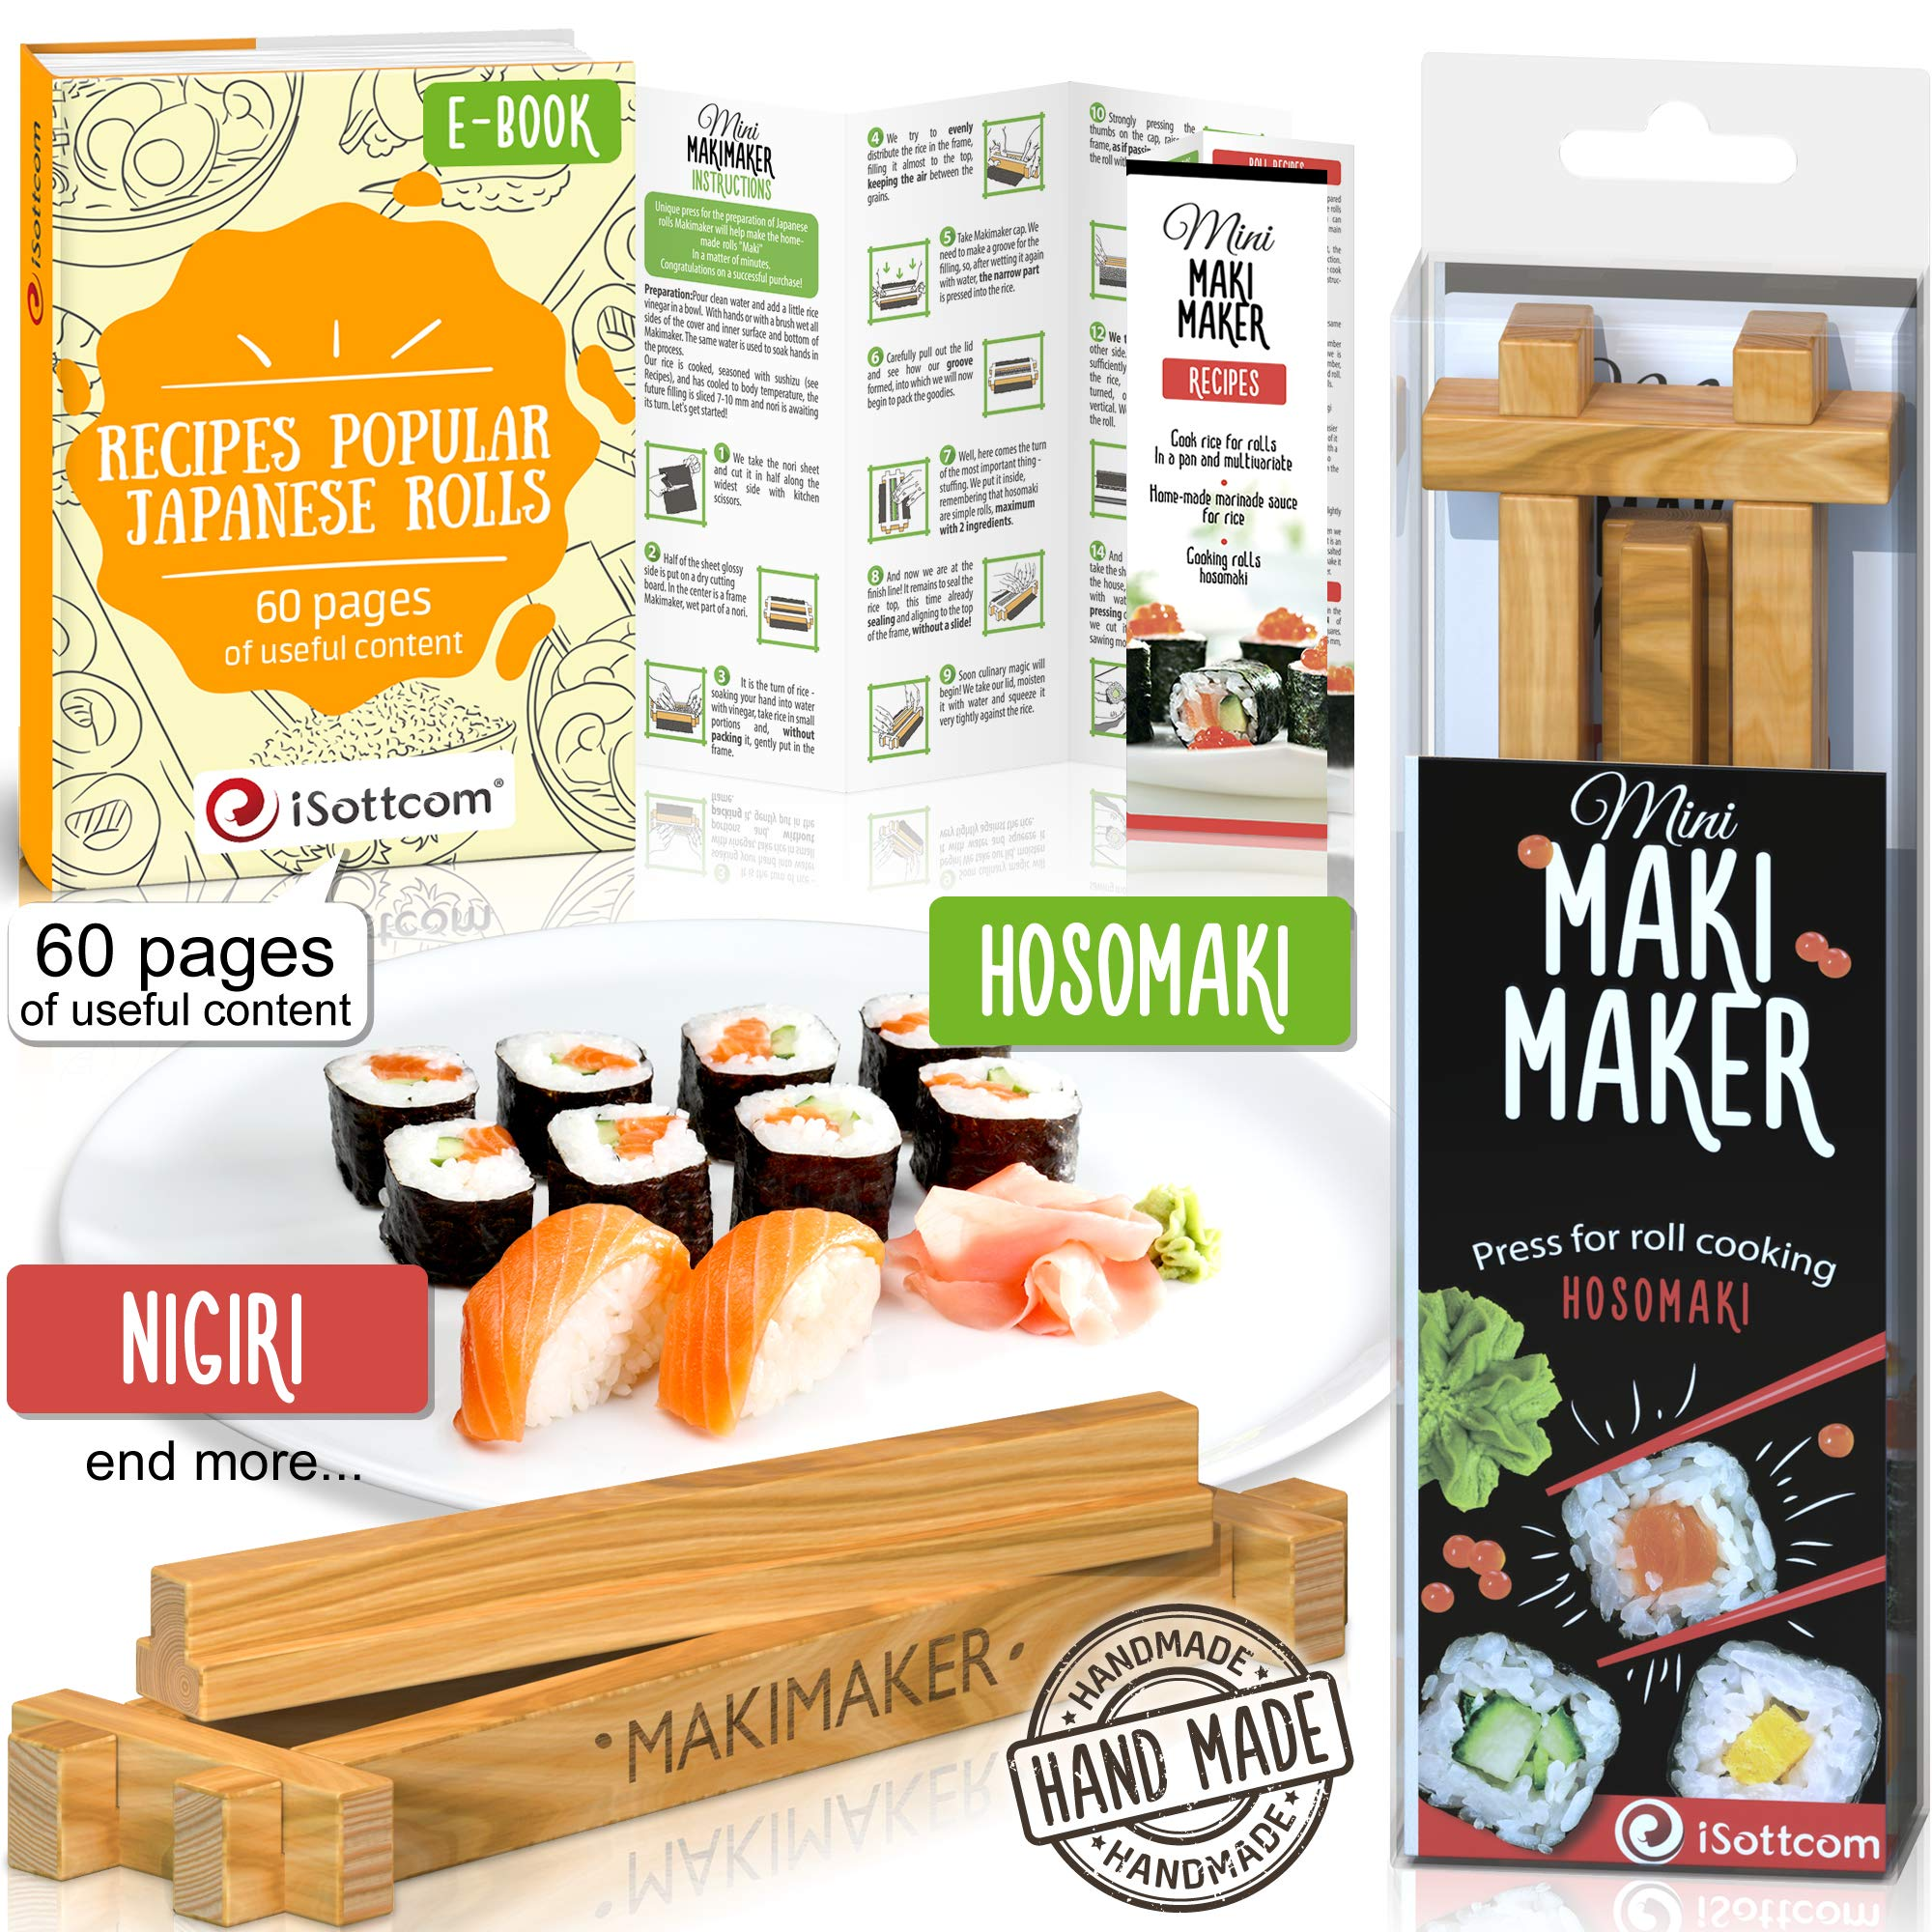 Sushi Making Kit by iSottcom – Makimaker Mini – Sushi Maker Best for Beginners and Kids – Sushi Kit – Japanese Sushi and Rolls at Home Quick and Easy with Sushi Mold – Sushi Press – Original Gift Idea